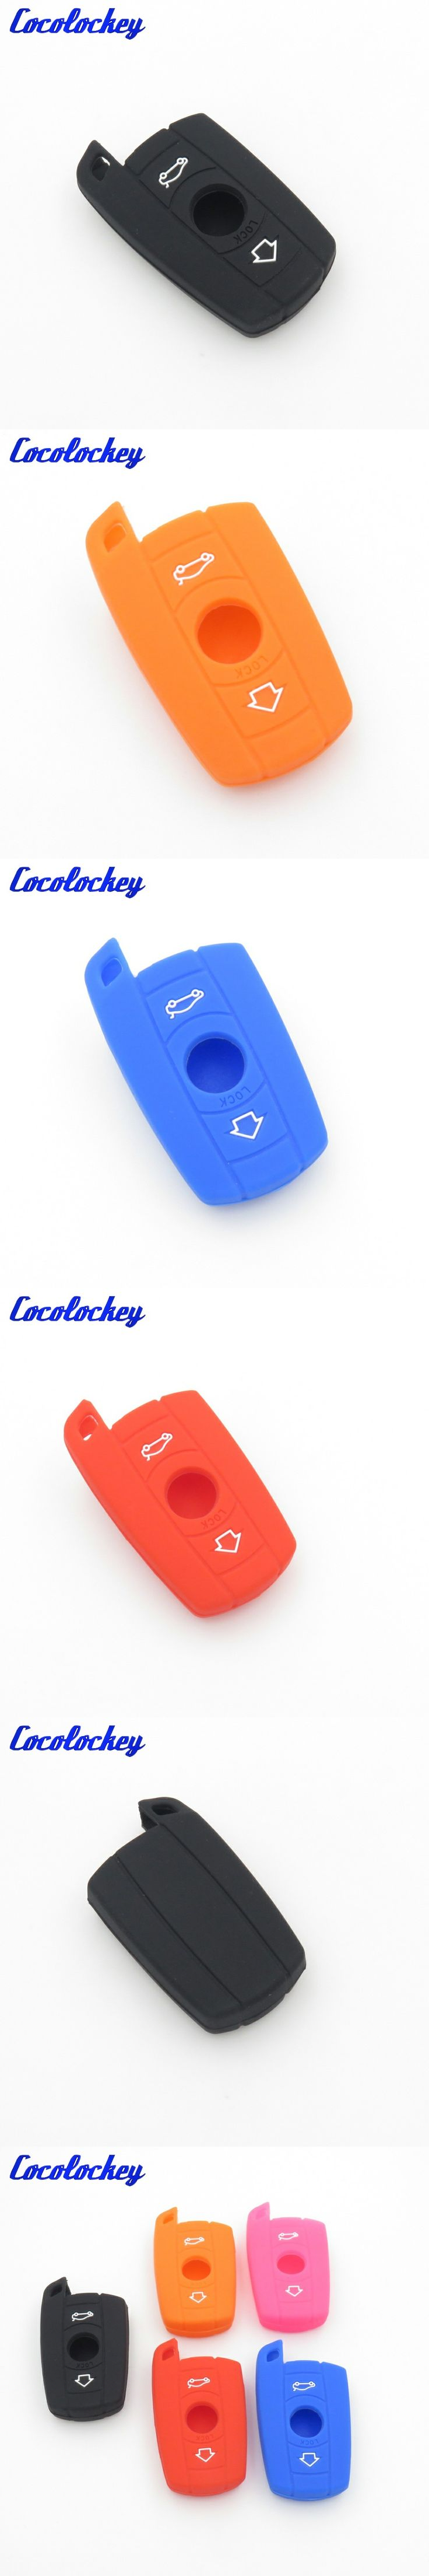 Cocolockey Silicone Key Cover Case Fob Shell Skin Set Fit For BMW 3 5 Series X1 X3 X4 X5 X6 Smart Key Card Car Styling 3Buttons